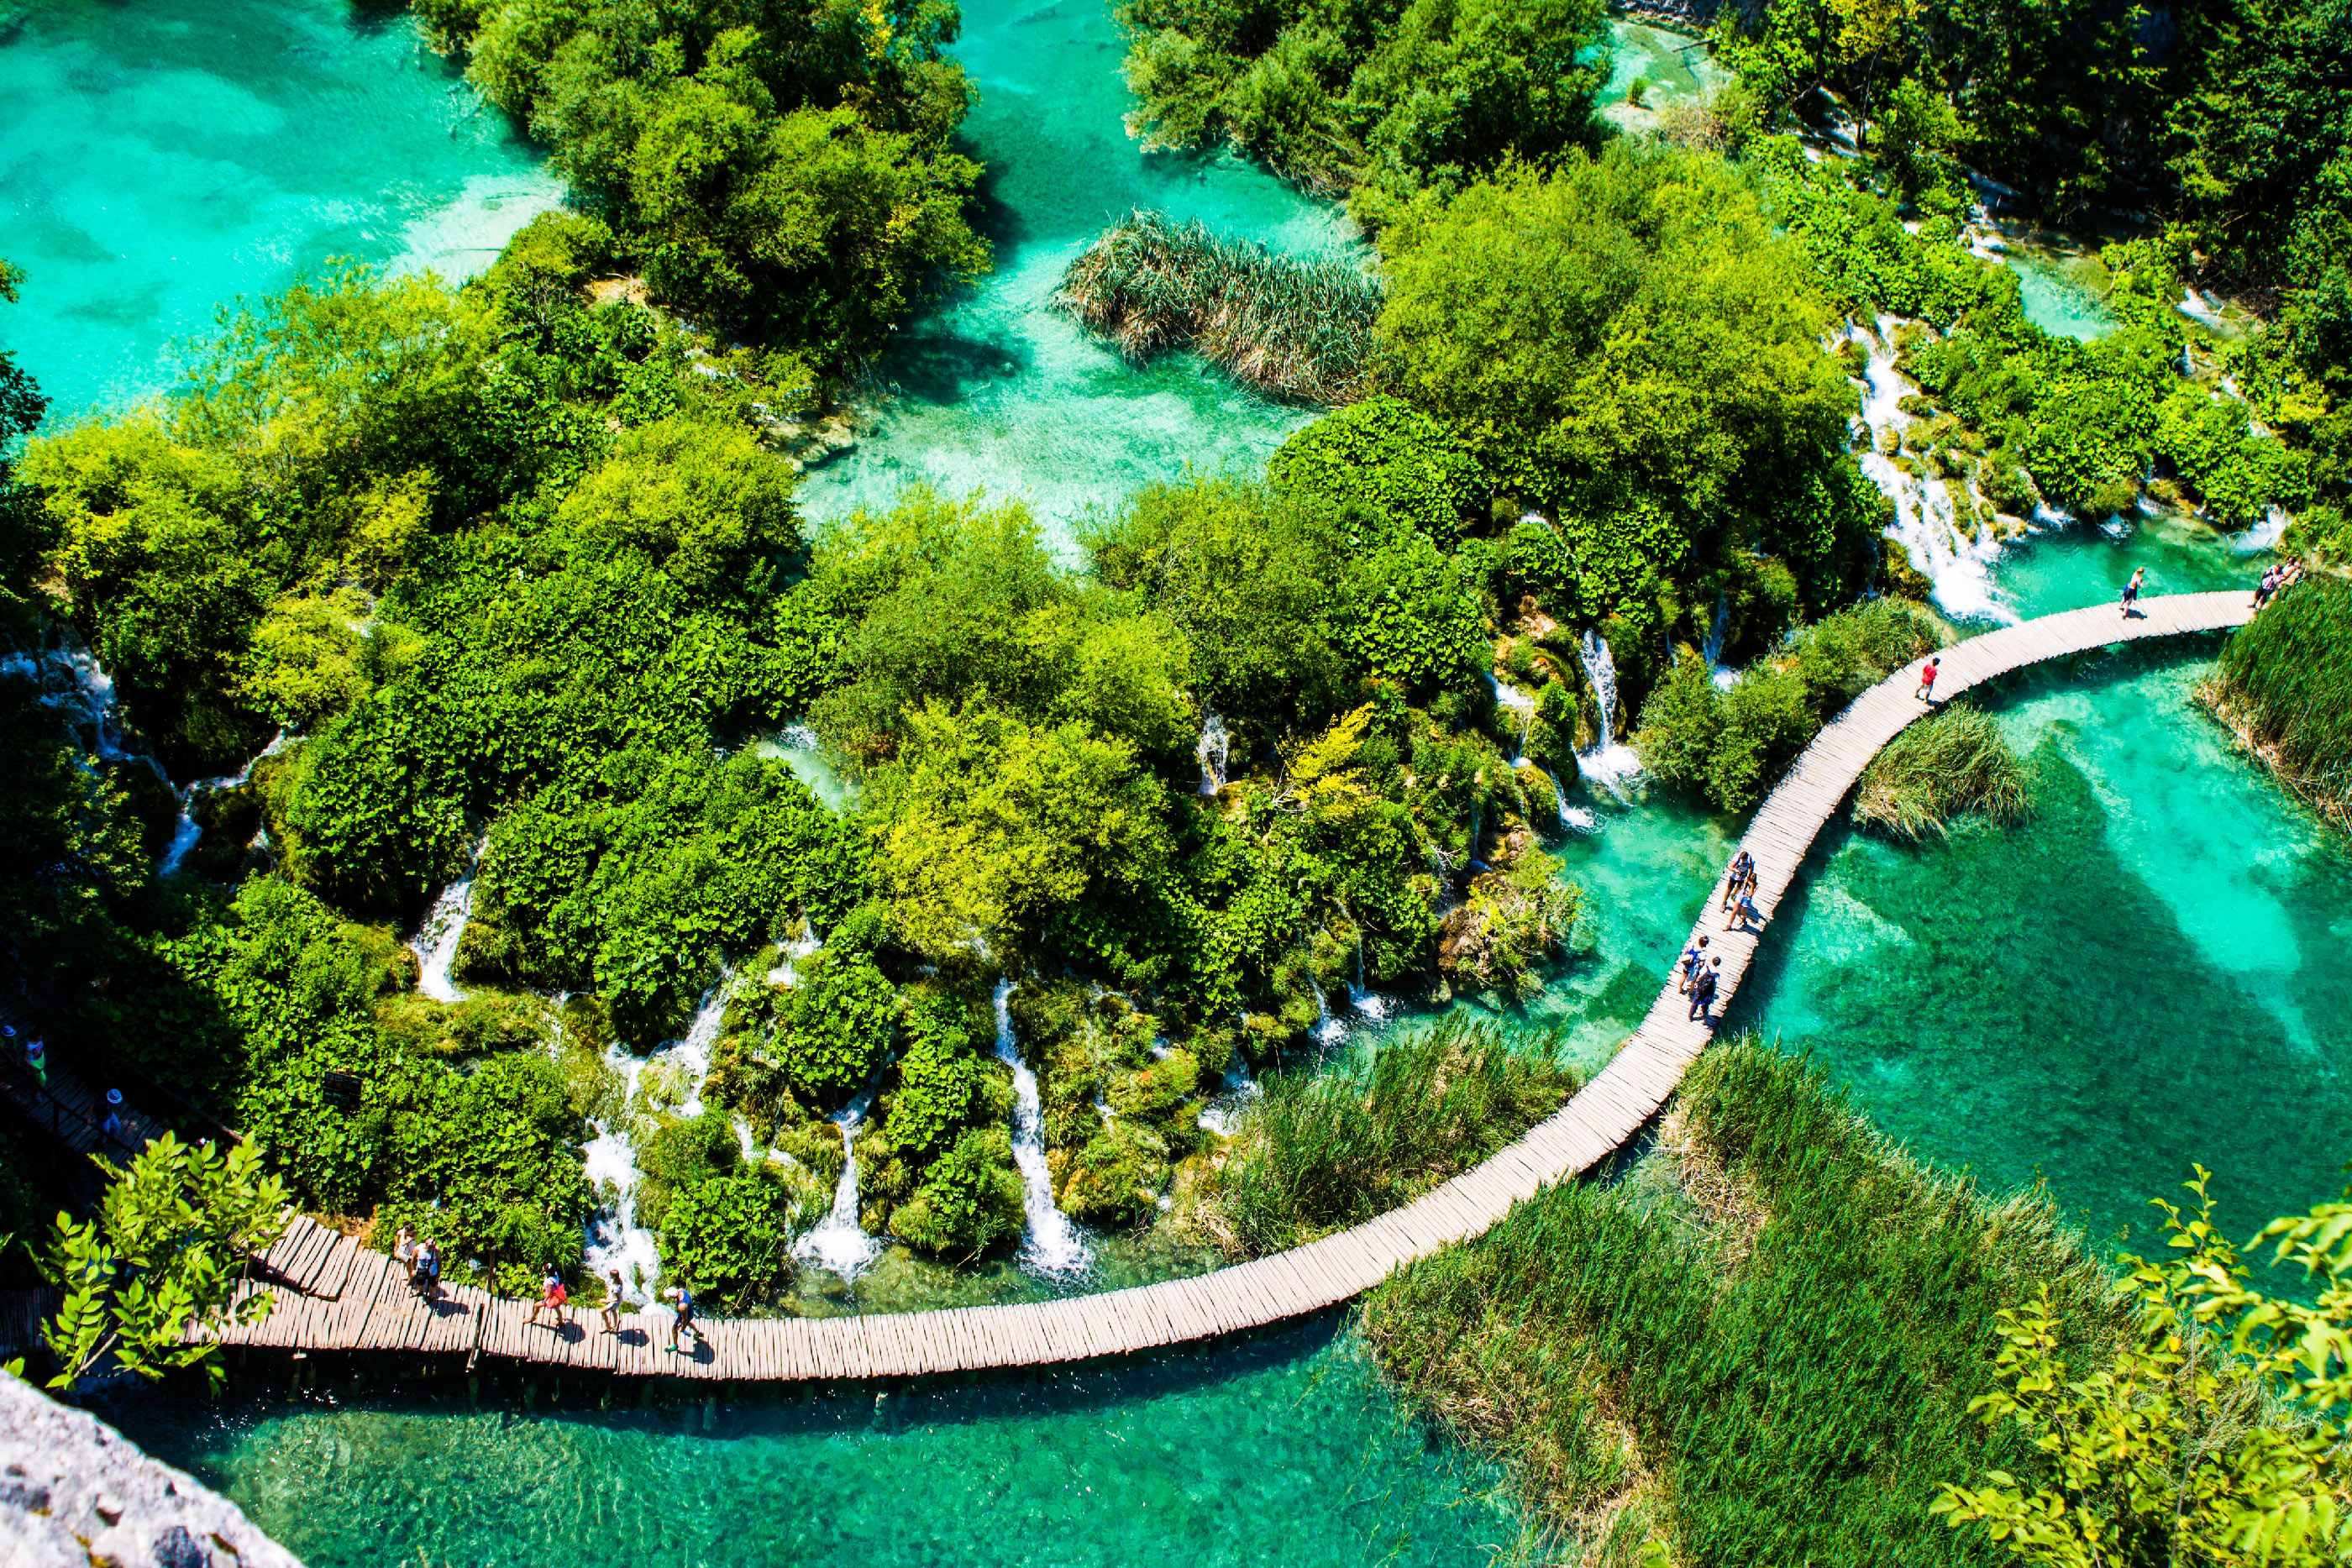 View of boardwalk over lake at Plitvice Lakes National Park